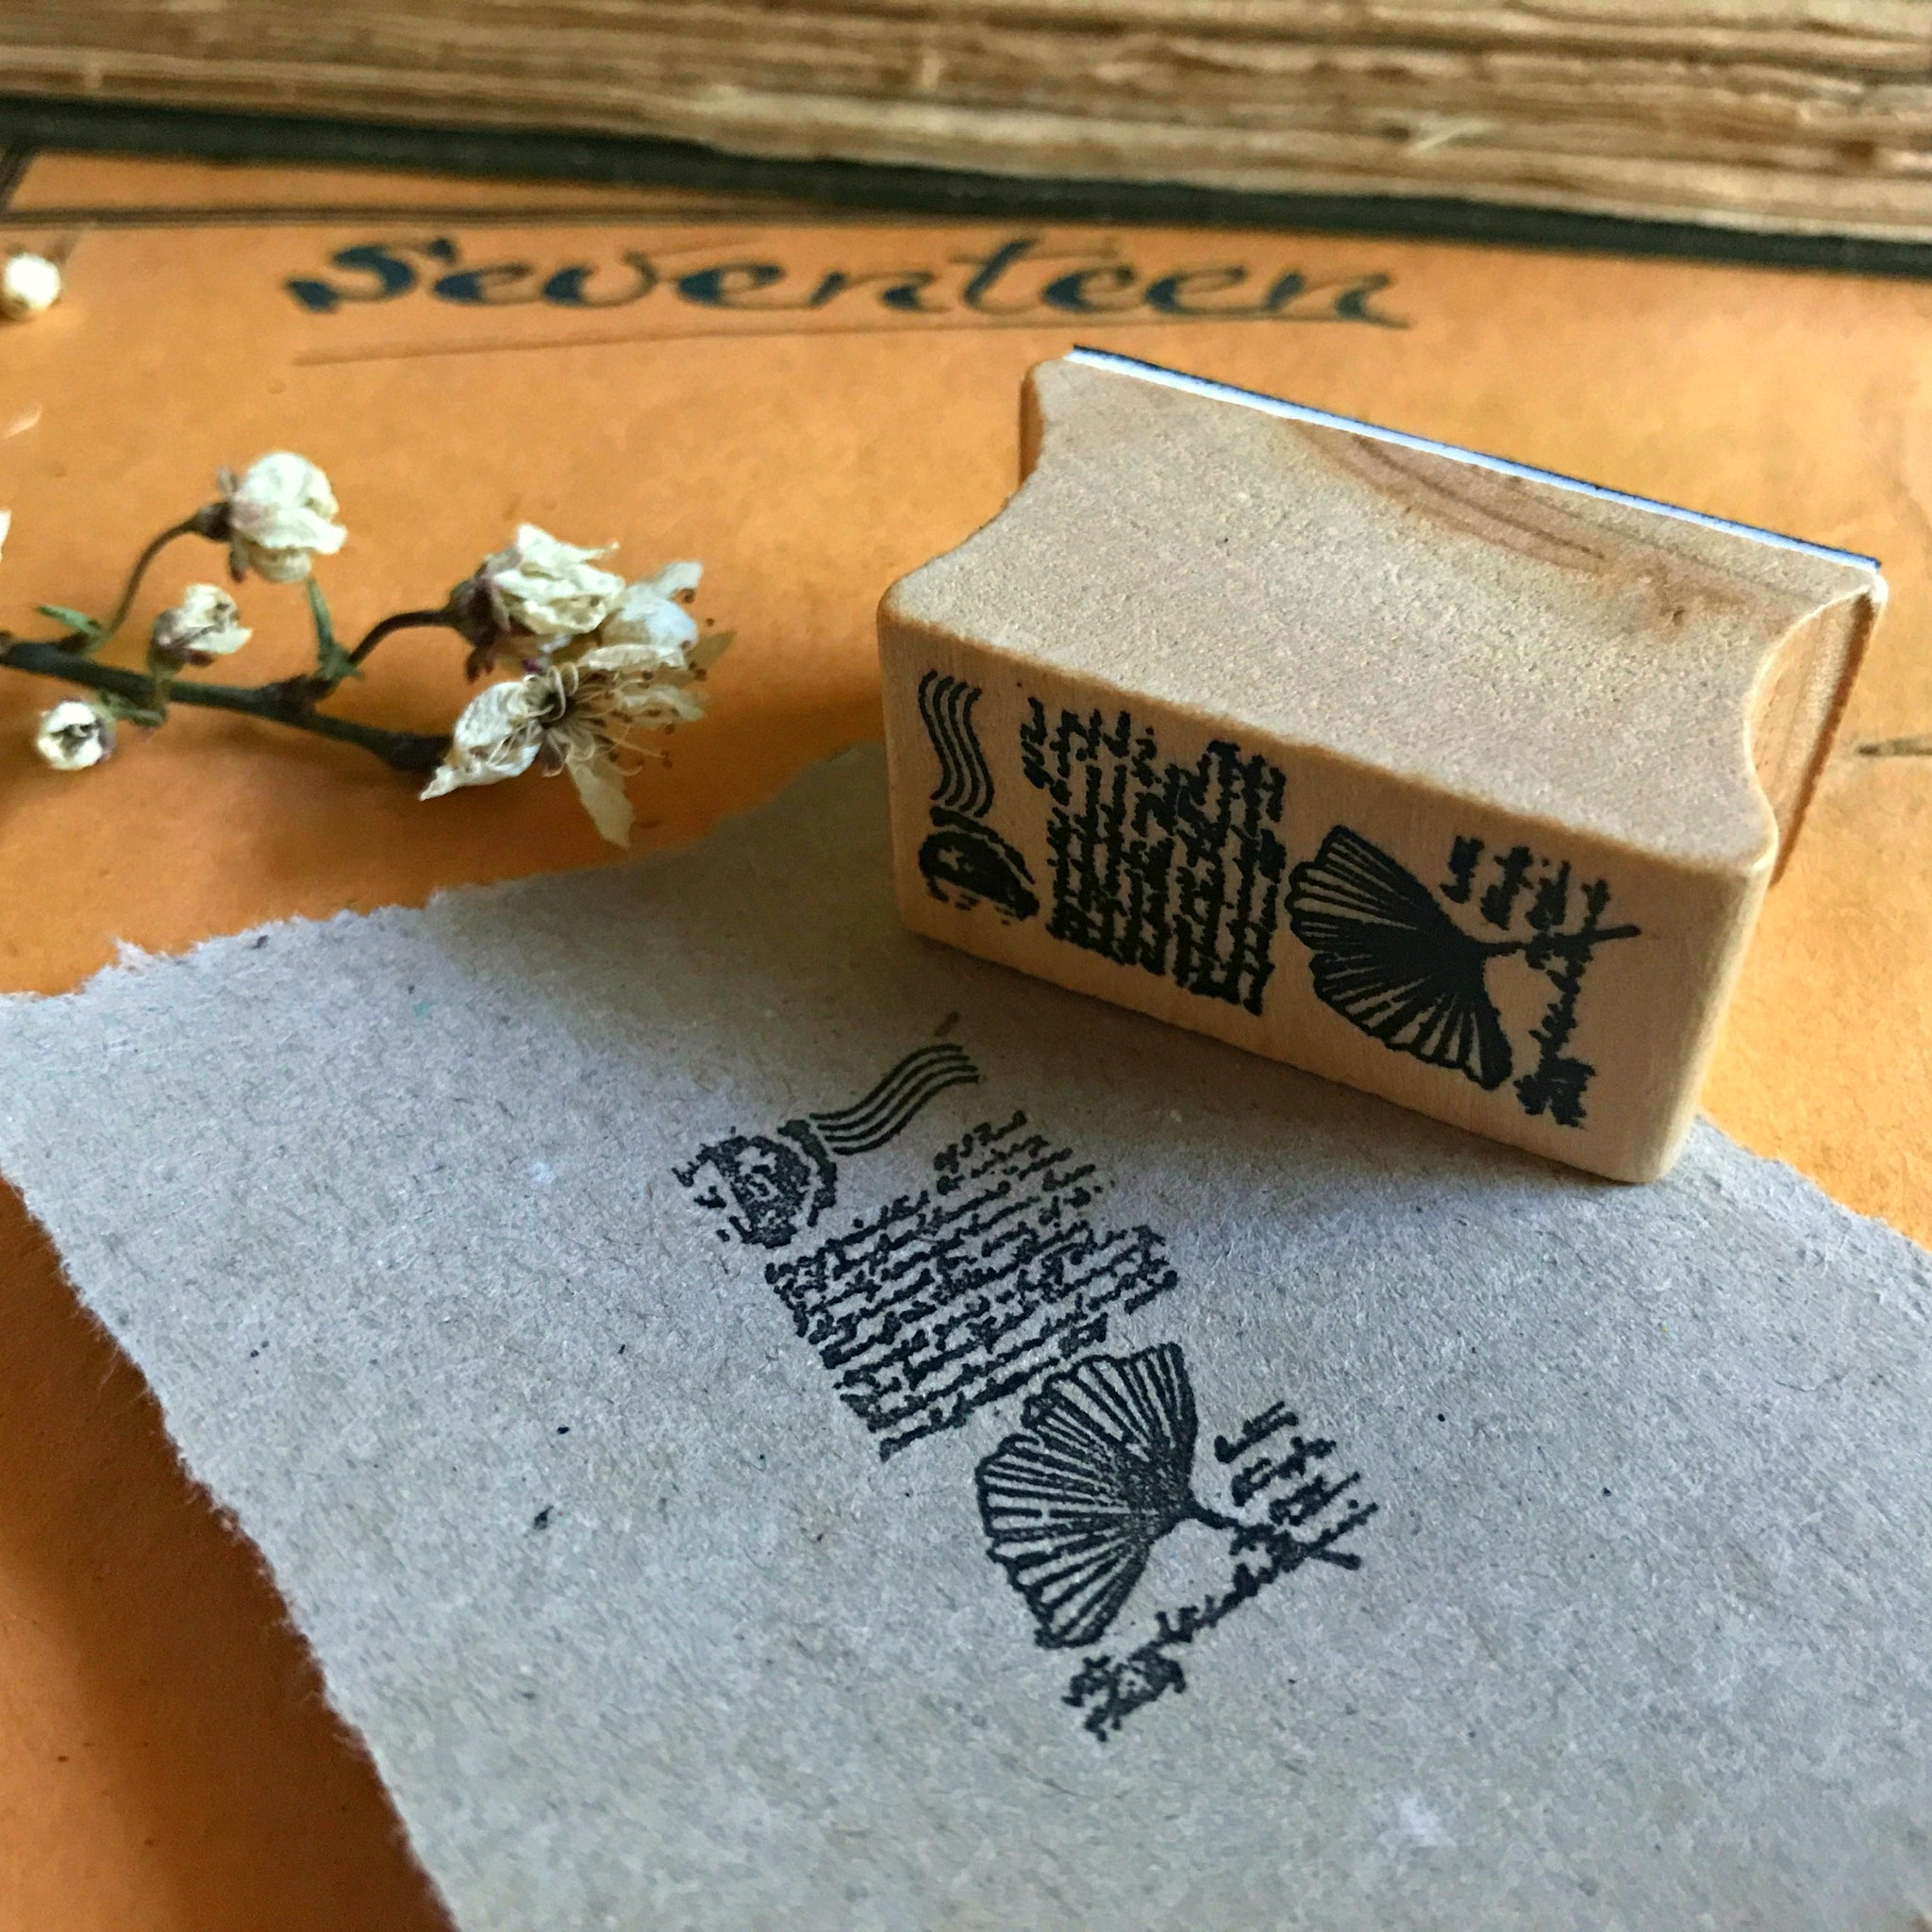 Rubber stamps with vintage botanical leaf design for papercraft, journalling, stationery making from Tribe Castlemaine